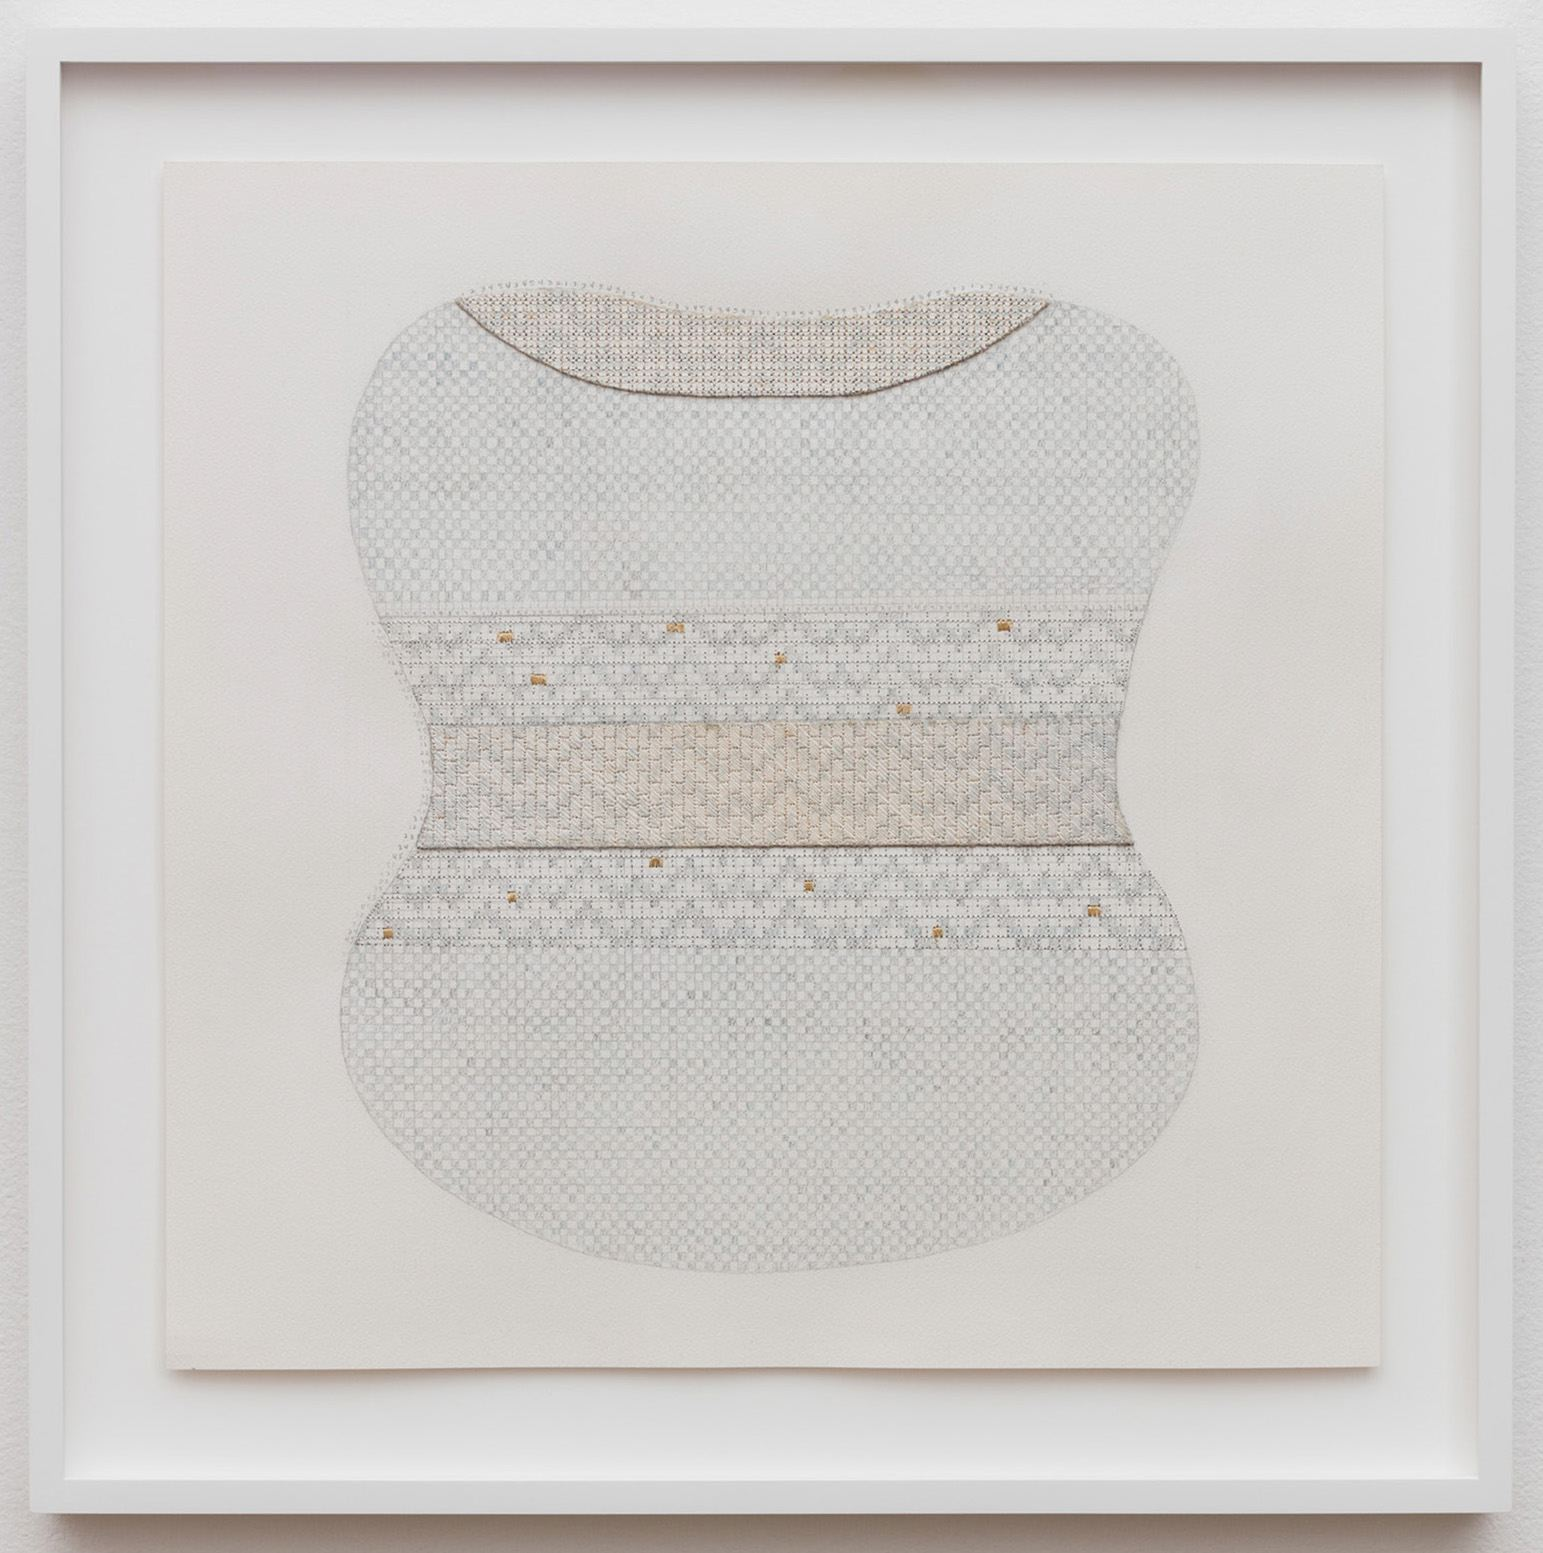 SUTURES Curves 6 2017 Ink, pencil, and embroidered thread on paper 22 x 22 x 1.5 in (55.9 x 55.9 x 3.8 cm) Courtesy of bitforms gallery, New York 2018 Marc Straus Gallery